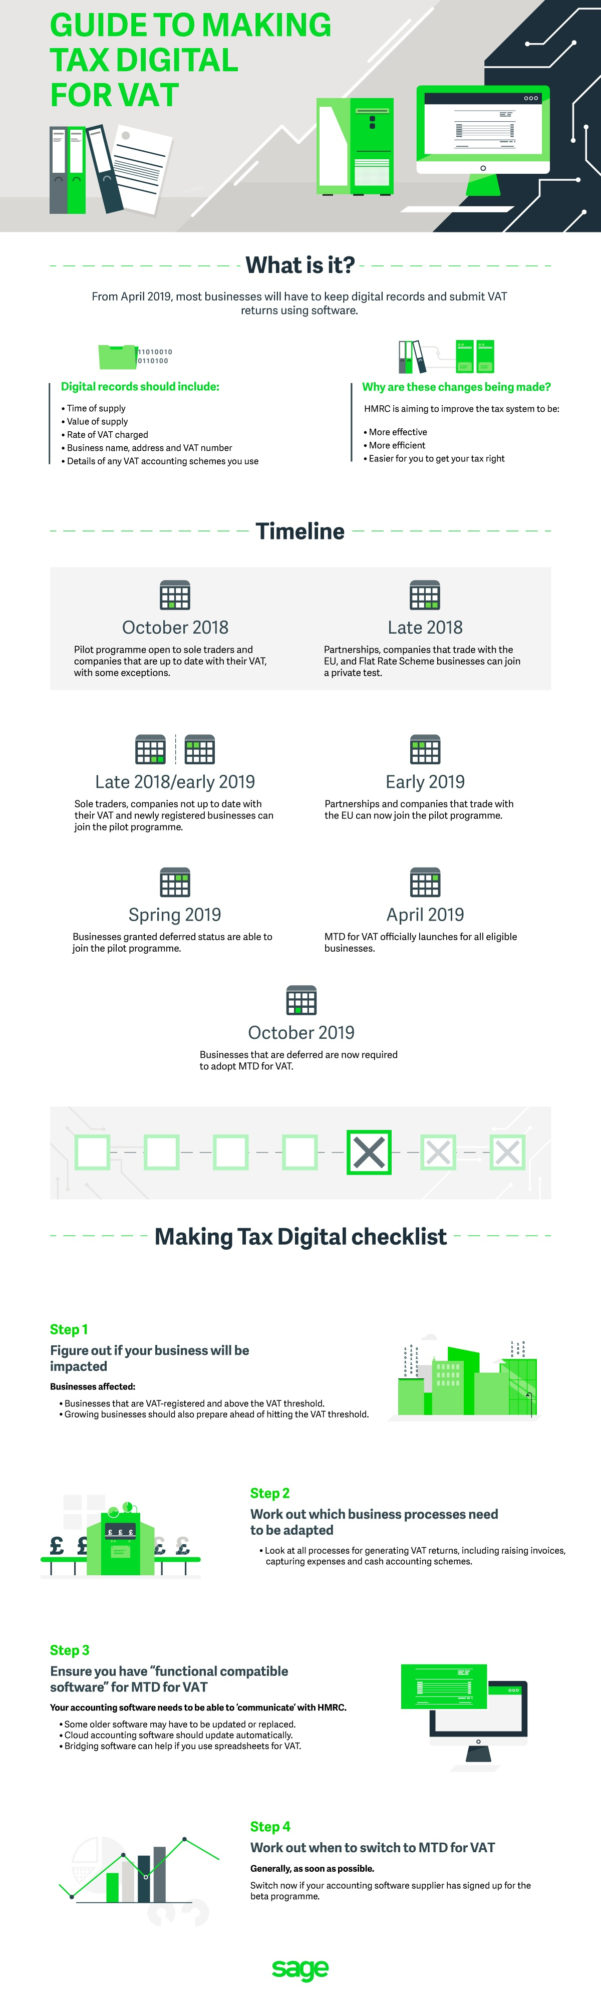 Partial Exemption Calculation Spreadsheet Throughout Making Tax Digital For Vat: What Do Hmrc's Updates Mean For You